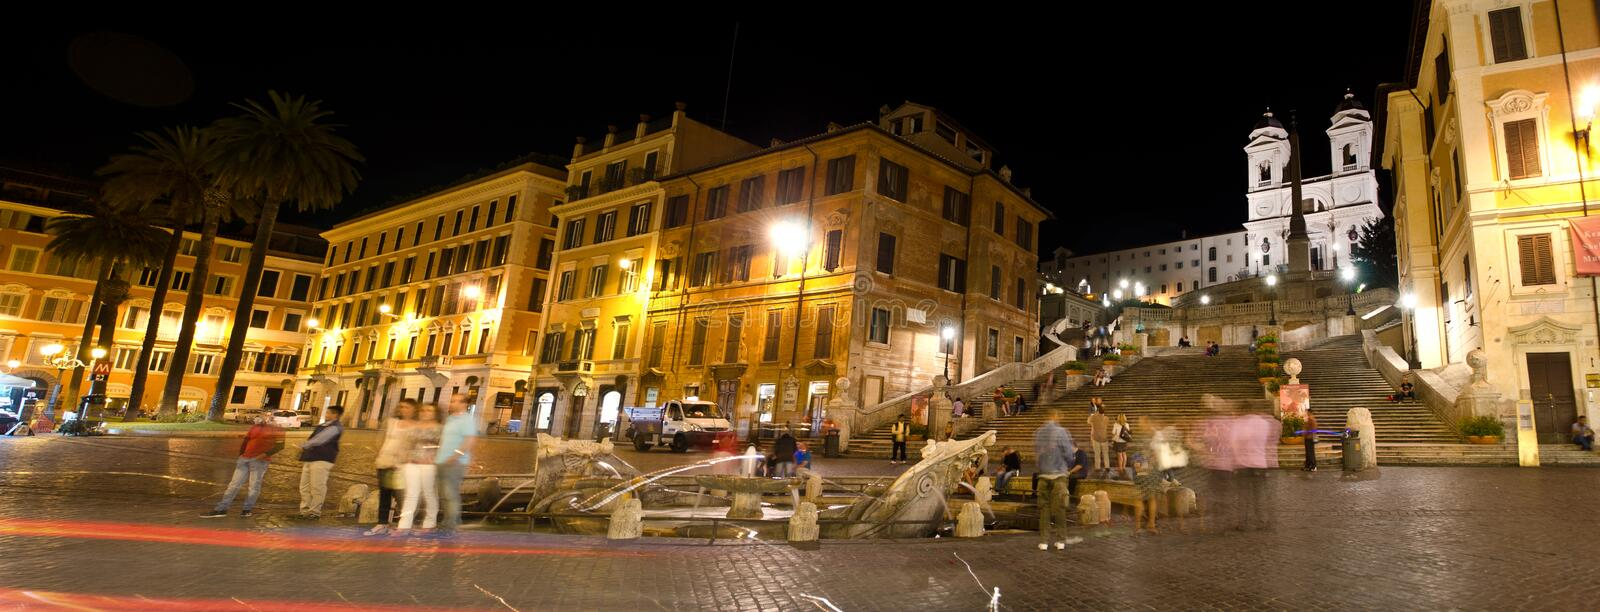 Download Spanish Stairs at night editorial stock photo. Image of church - 27179618